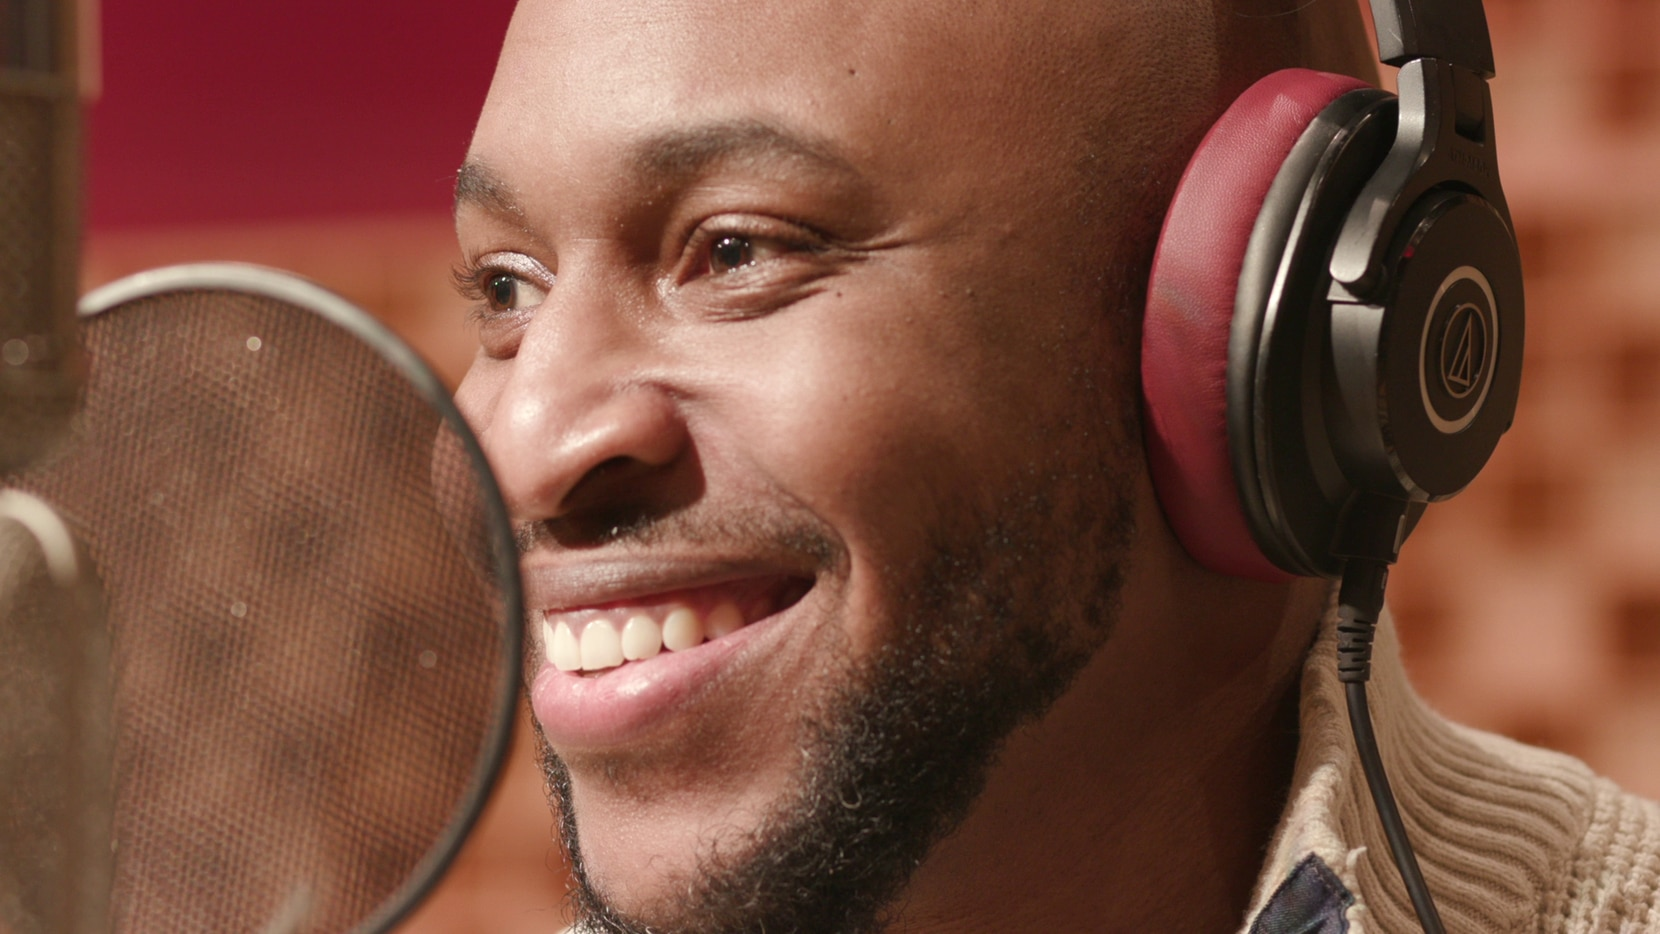 """Jazz pianist and vocalist Aaron Myers, who is originally from Goodlow, Texas, appears in the video version of """"The Pride Album,"""" released last month."""